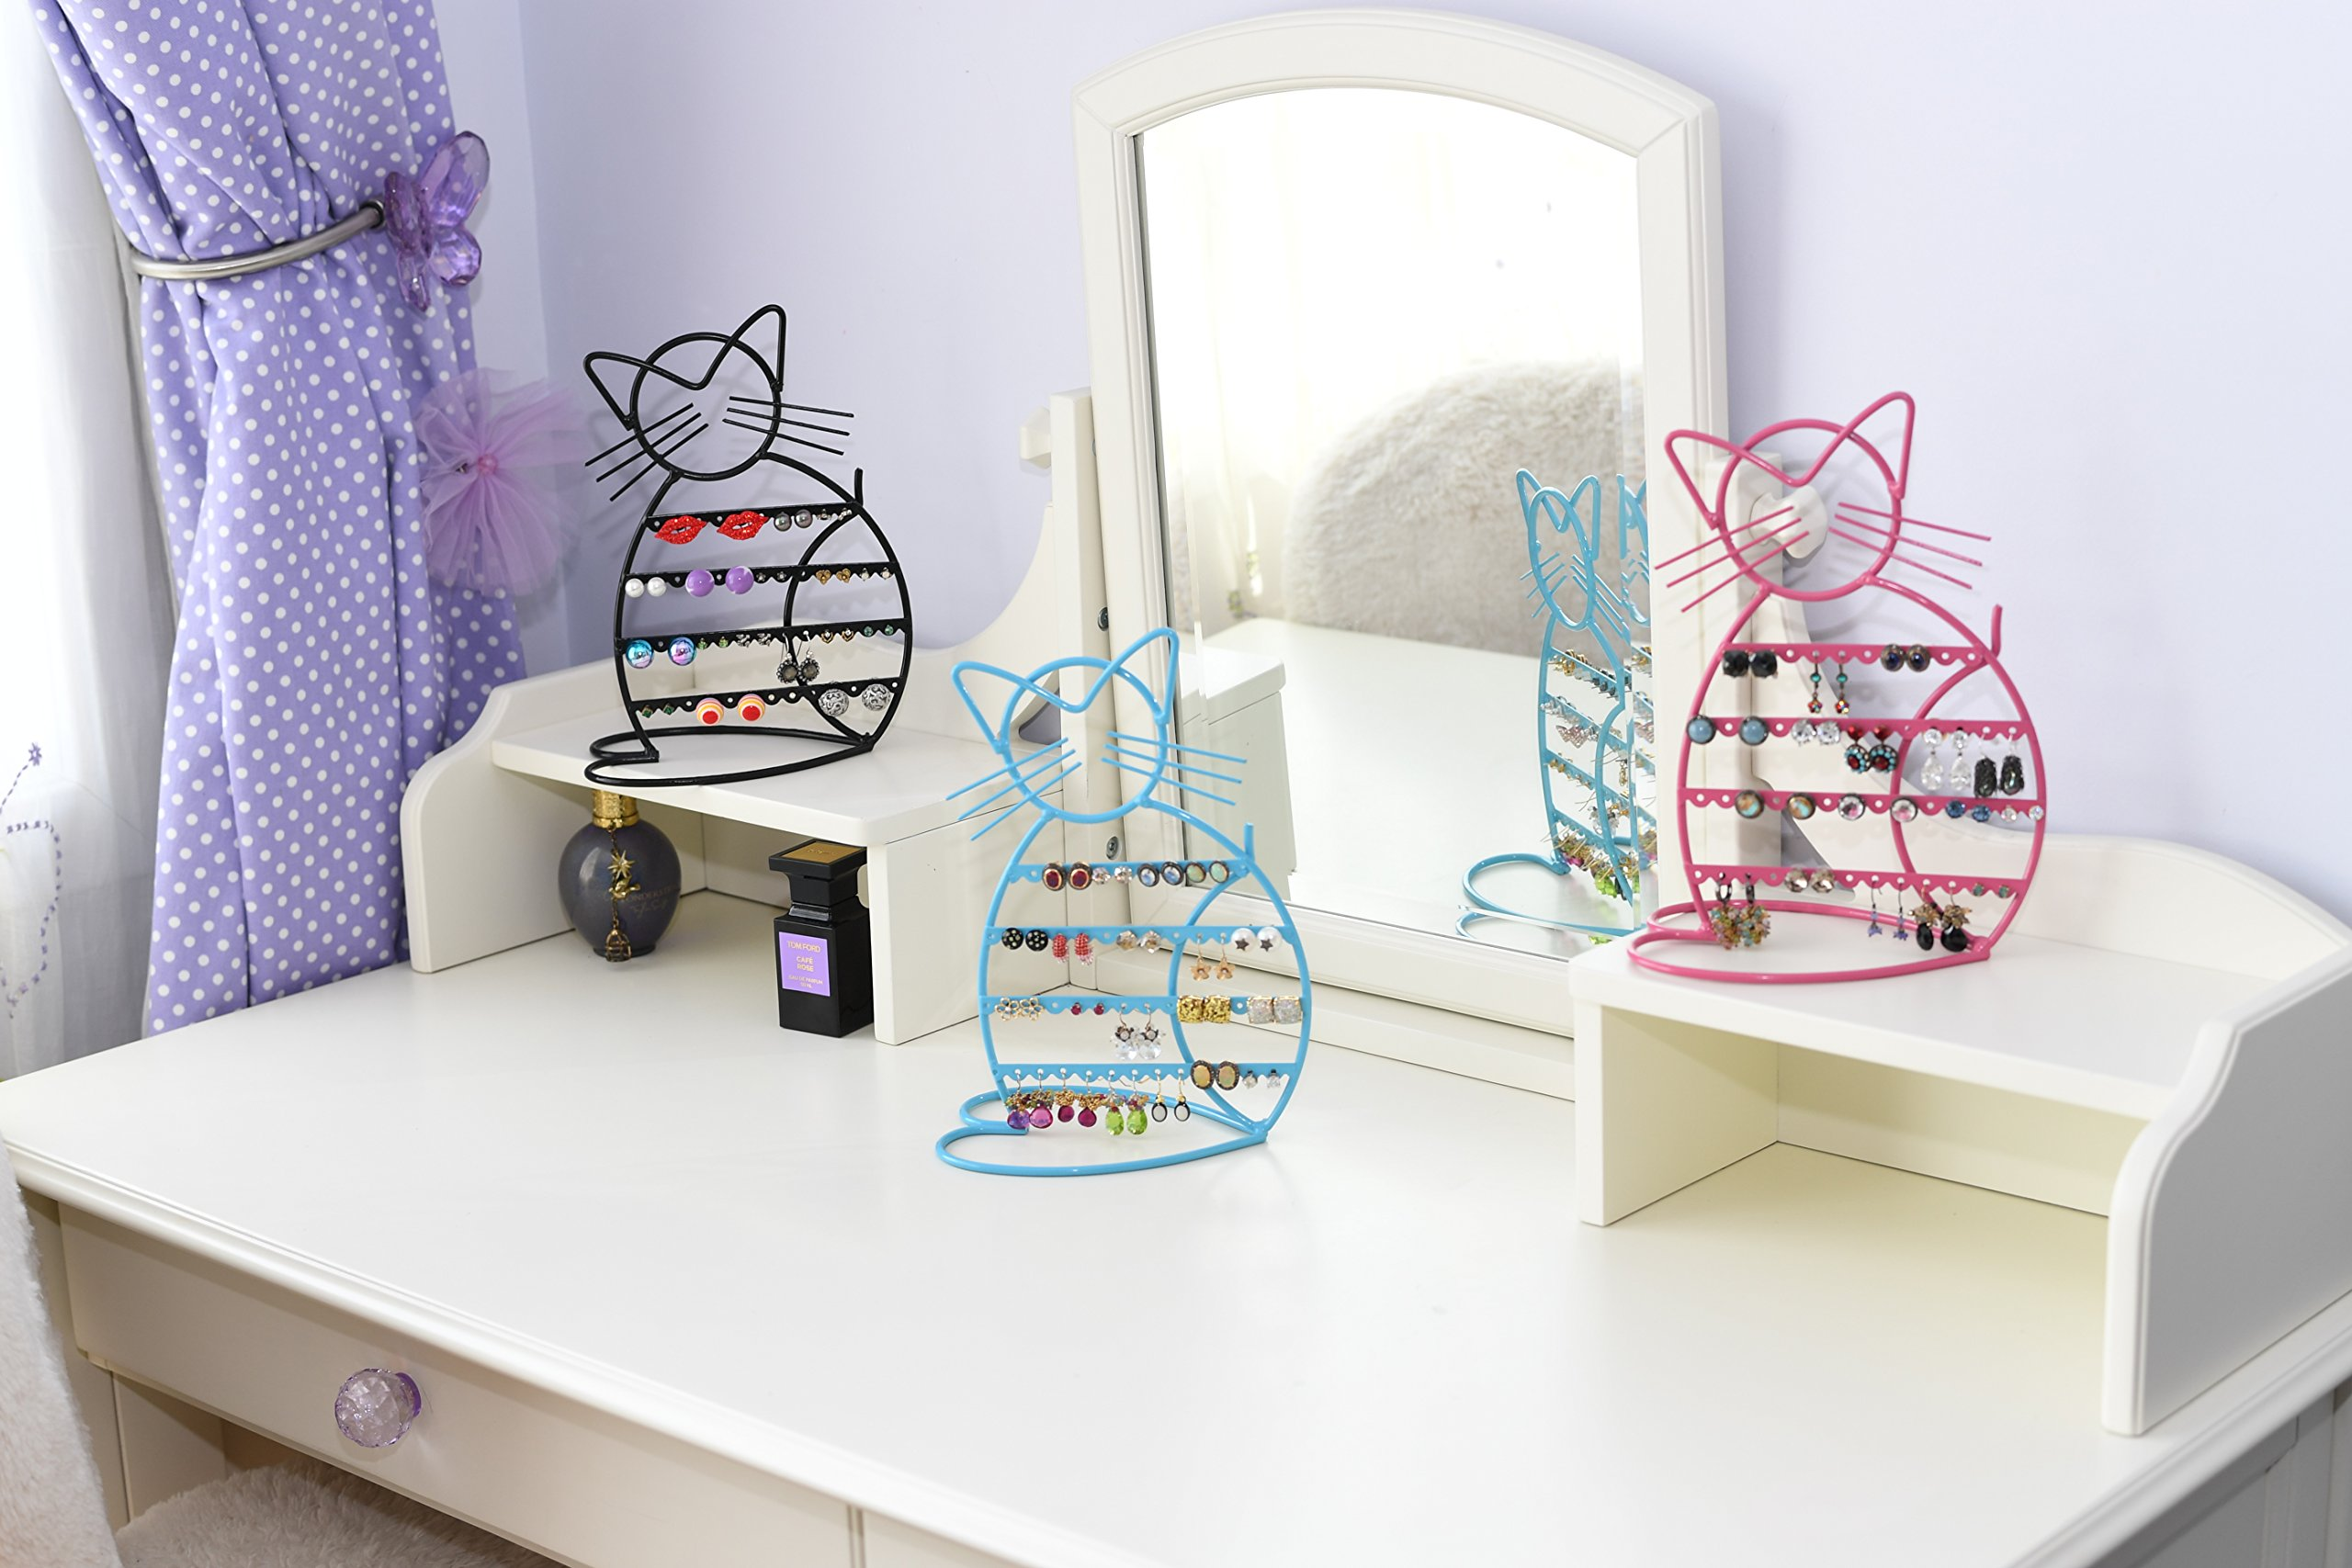 ARAD Metal Jewelry Cat, Holder Organizer-Hanging Jewelry Display Earrings & Other Piercings by ARAD (Image #2)